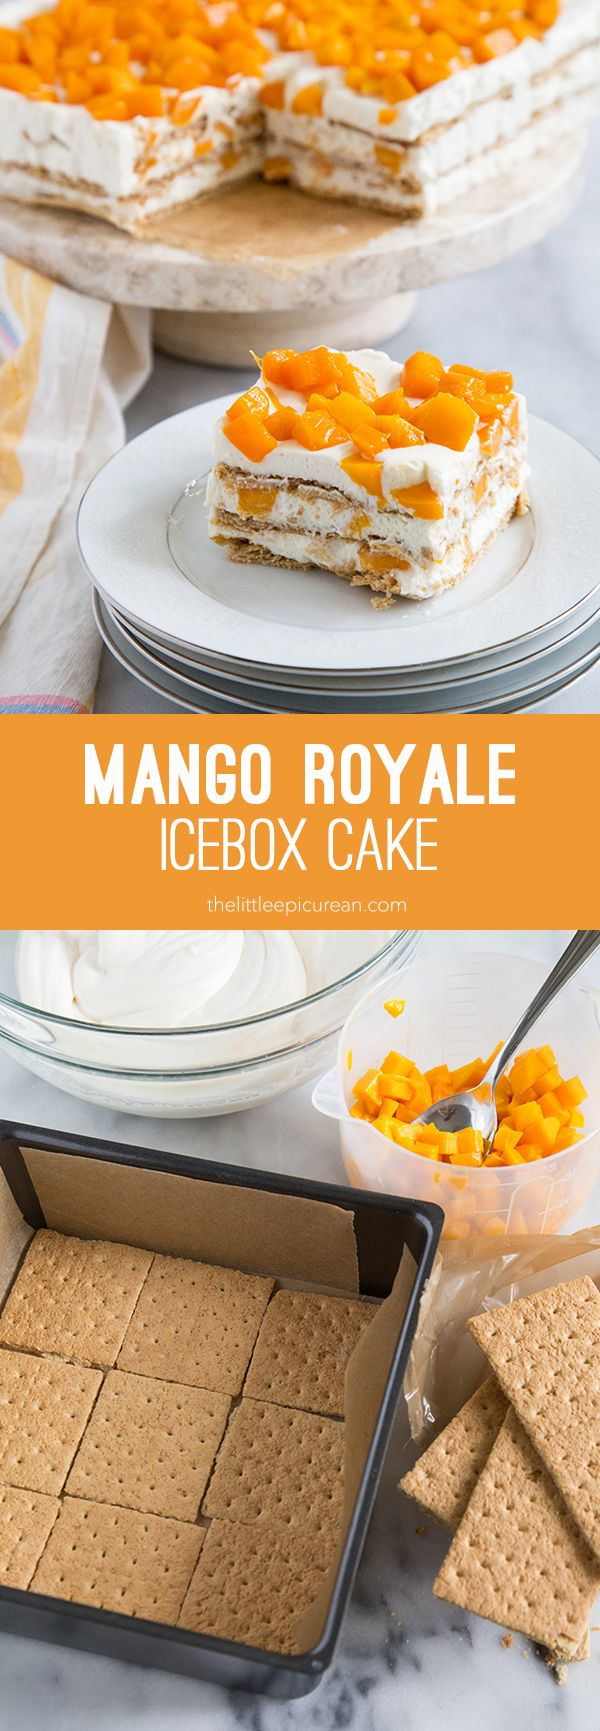 Mango Royale Icebox Cake is variation on a popular Filipino dessert called Crema de Fruta. Made with graham crackers, whipped cream, and fresh mangoes.